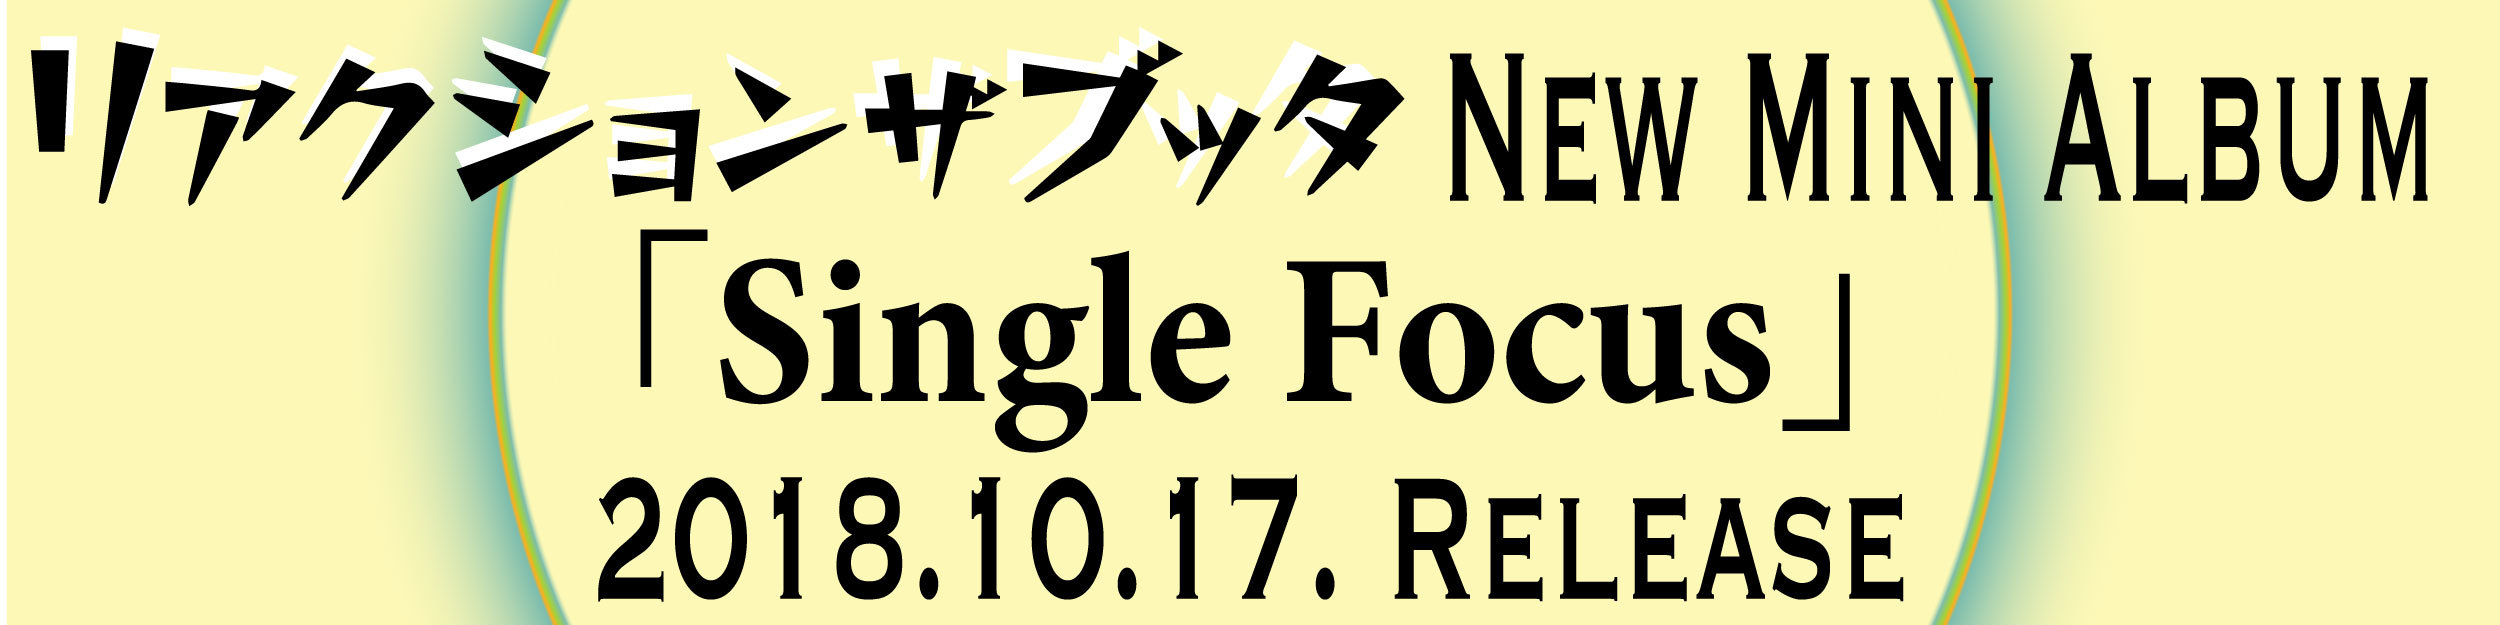 Single Focus Release BNR